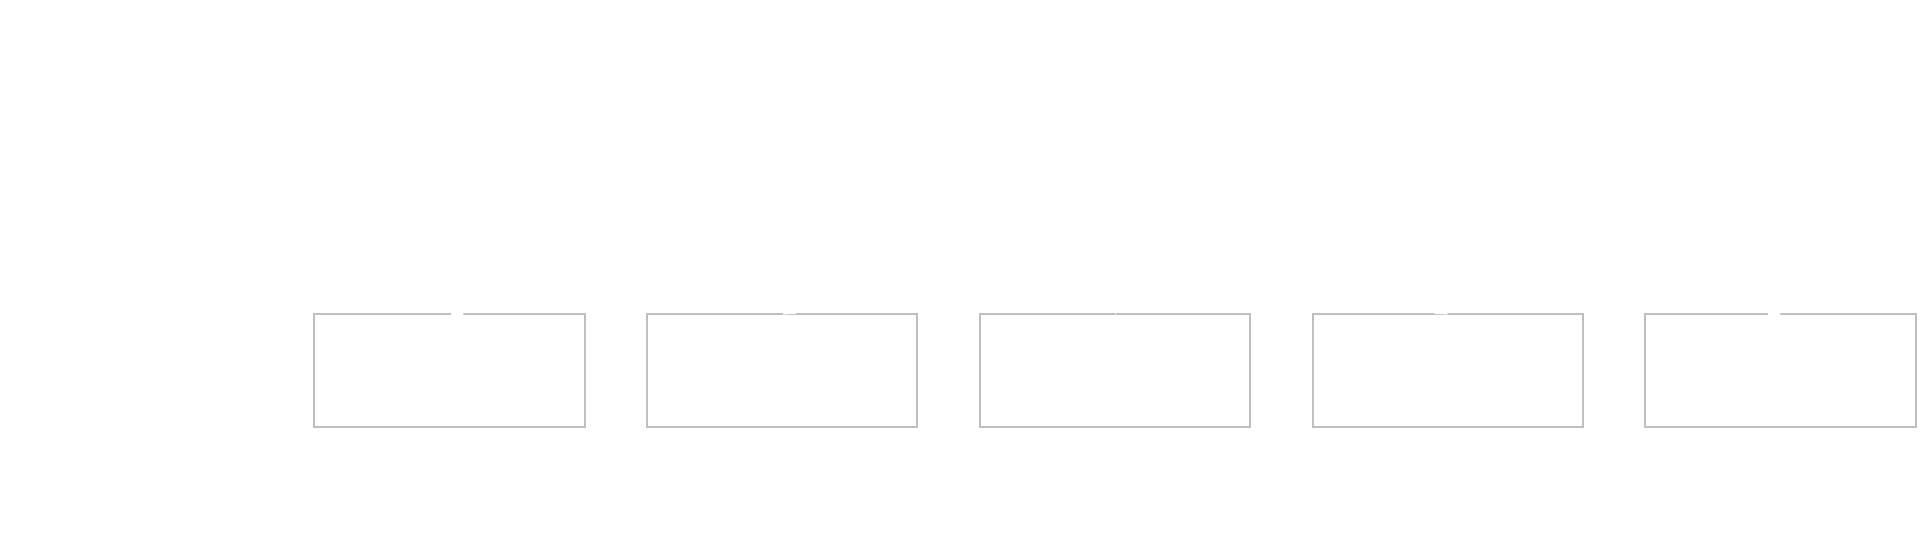 SEO pillars and their importance for SEO. on-page SEO, off-page SEO, technical SEO, voice SEO, and content creation. All this contributes to b2b lead generation strategies for b2b SEO.